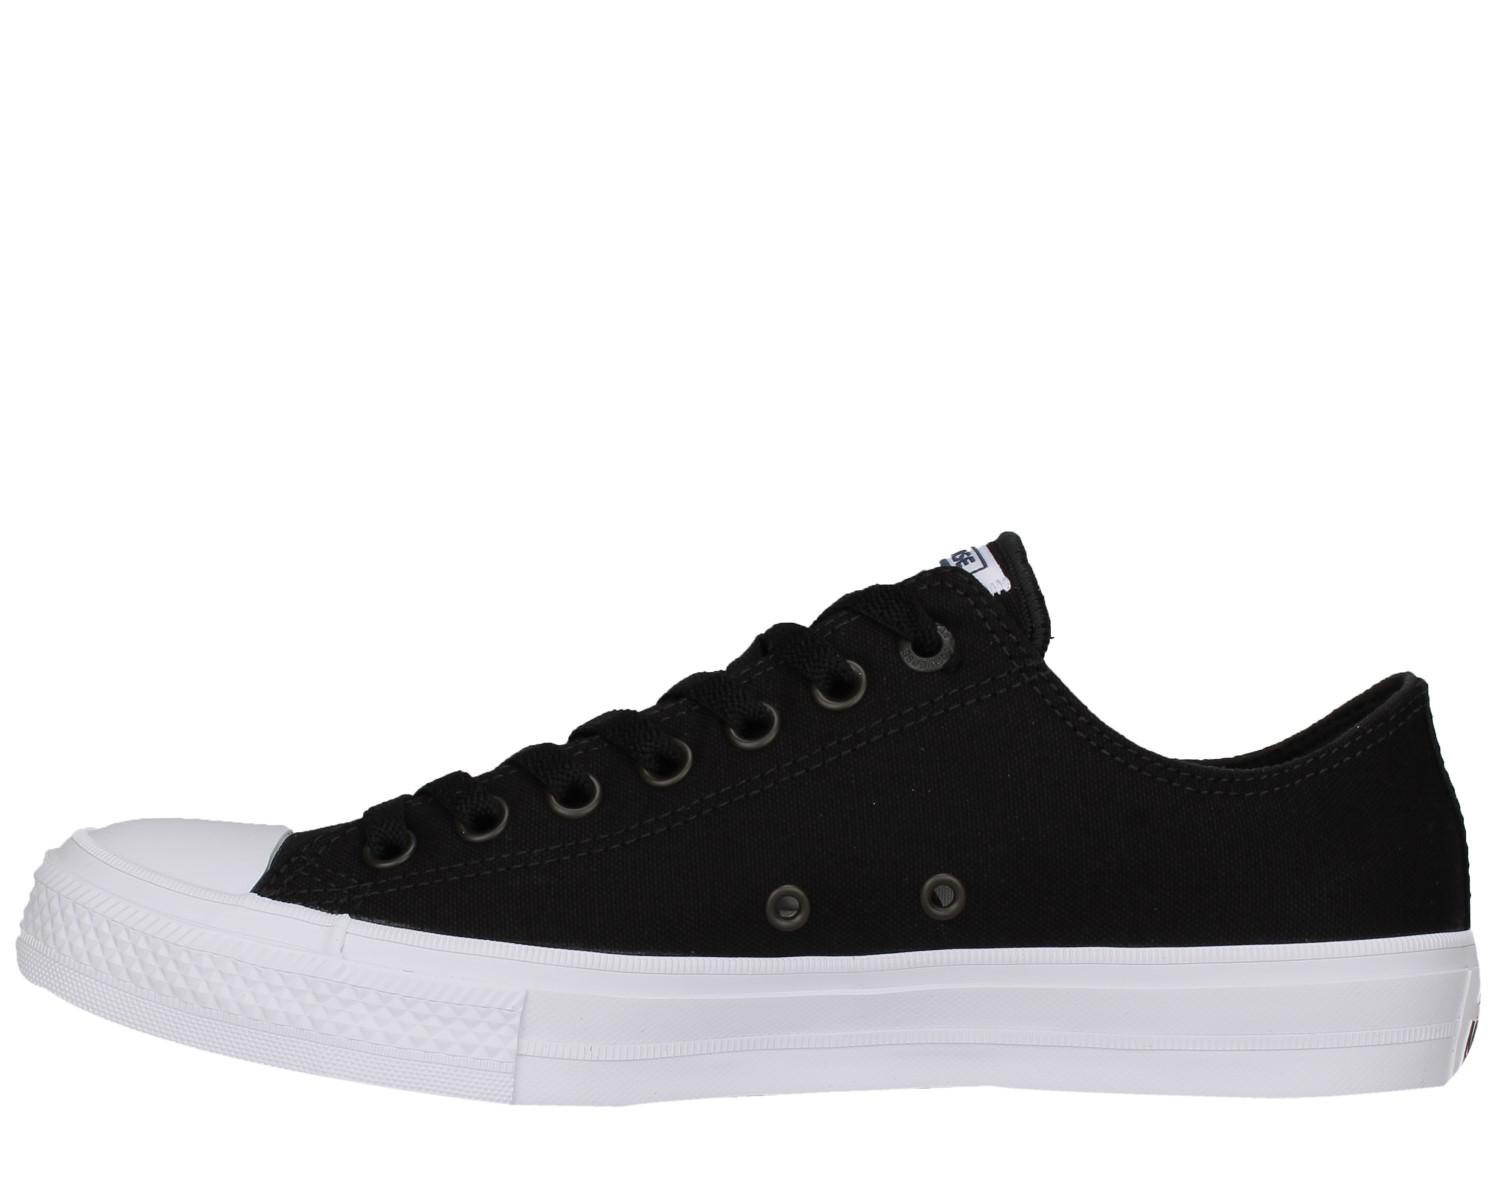 Lyst - Converse 150149c   Mens Chuck Taylor All Star Low Ii Sneaker ... 62862ee92bf01